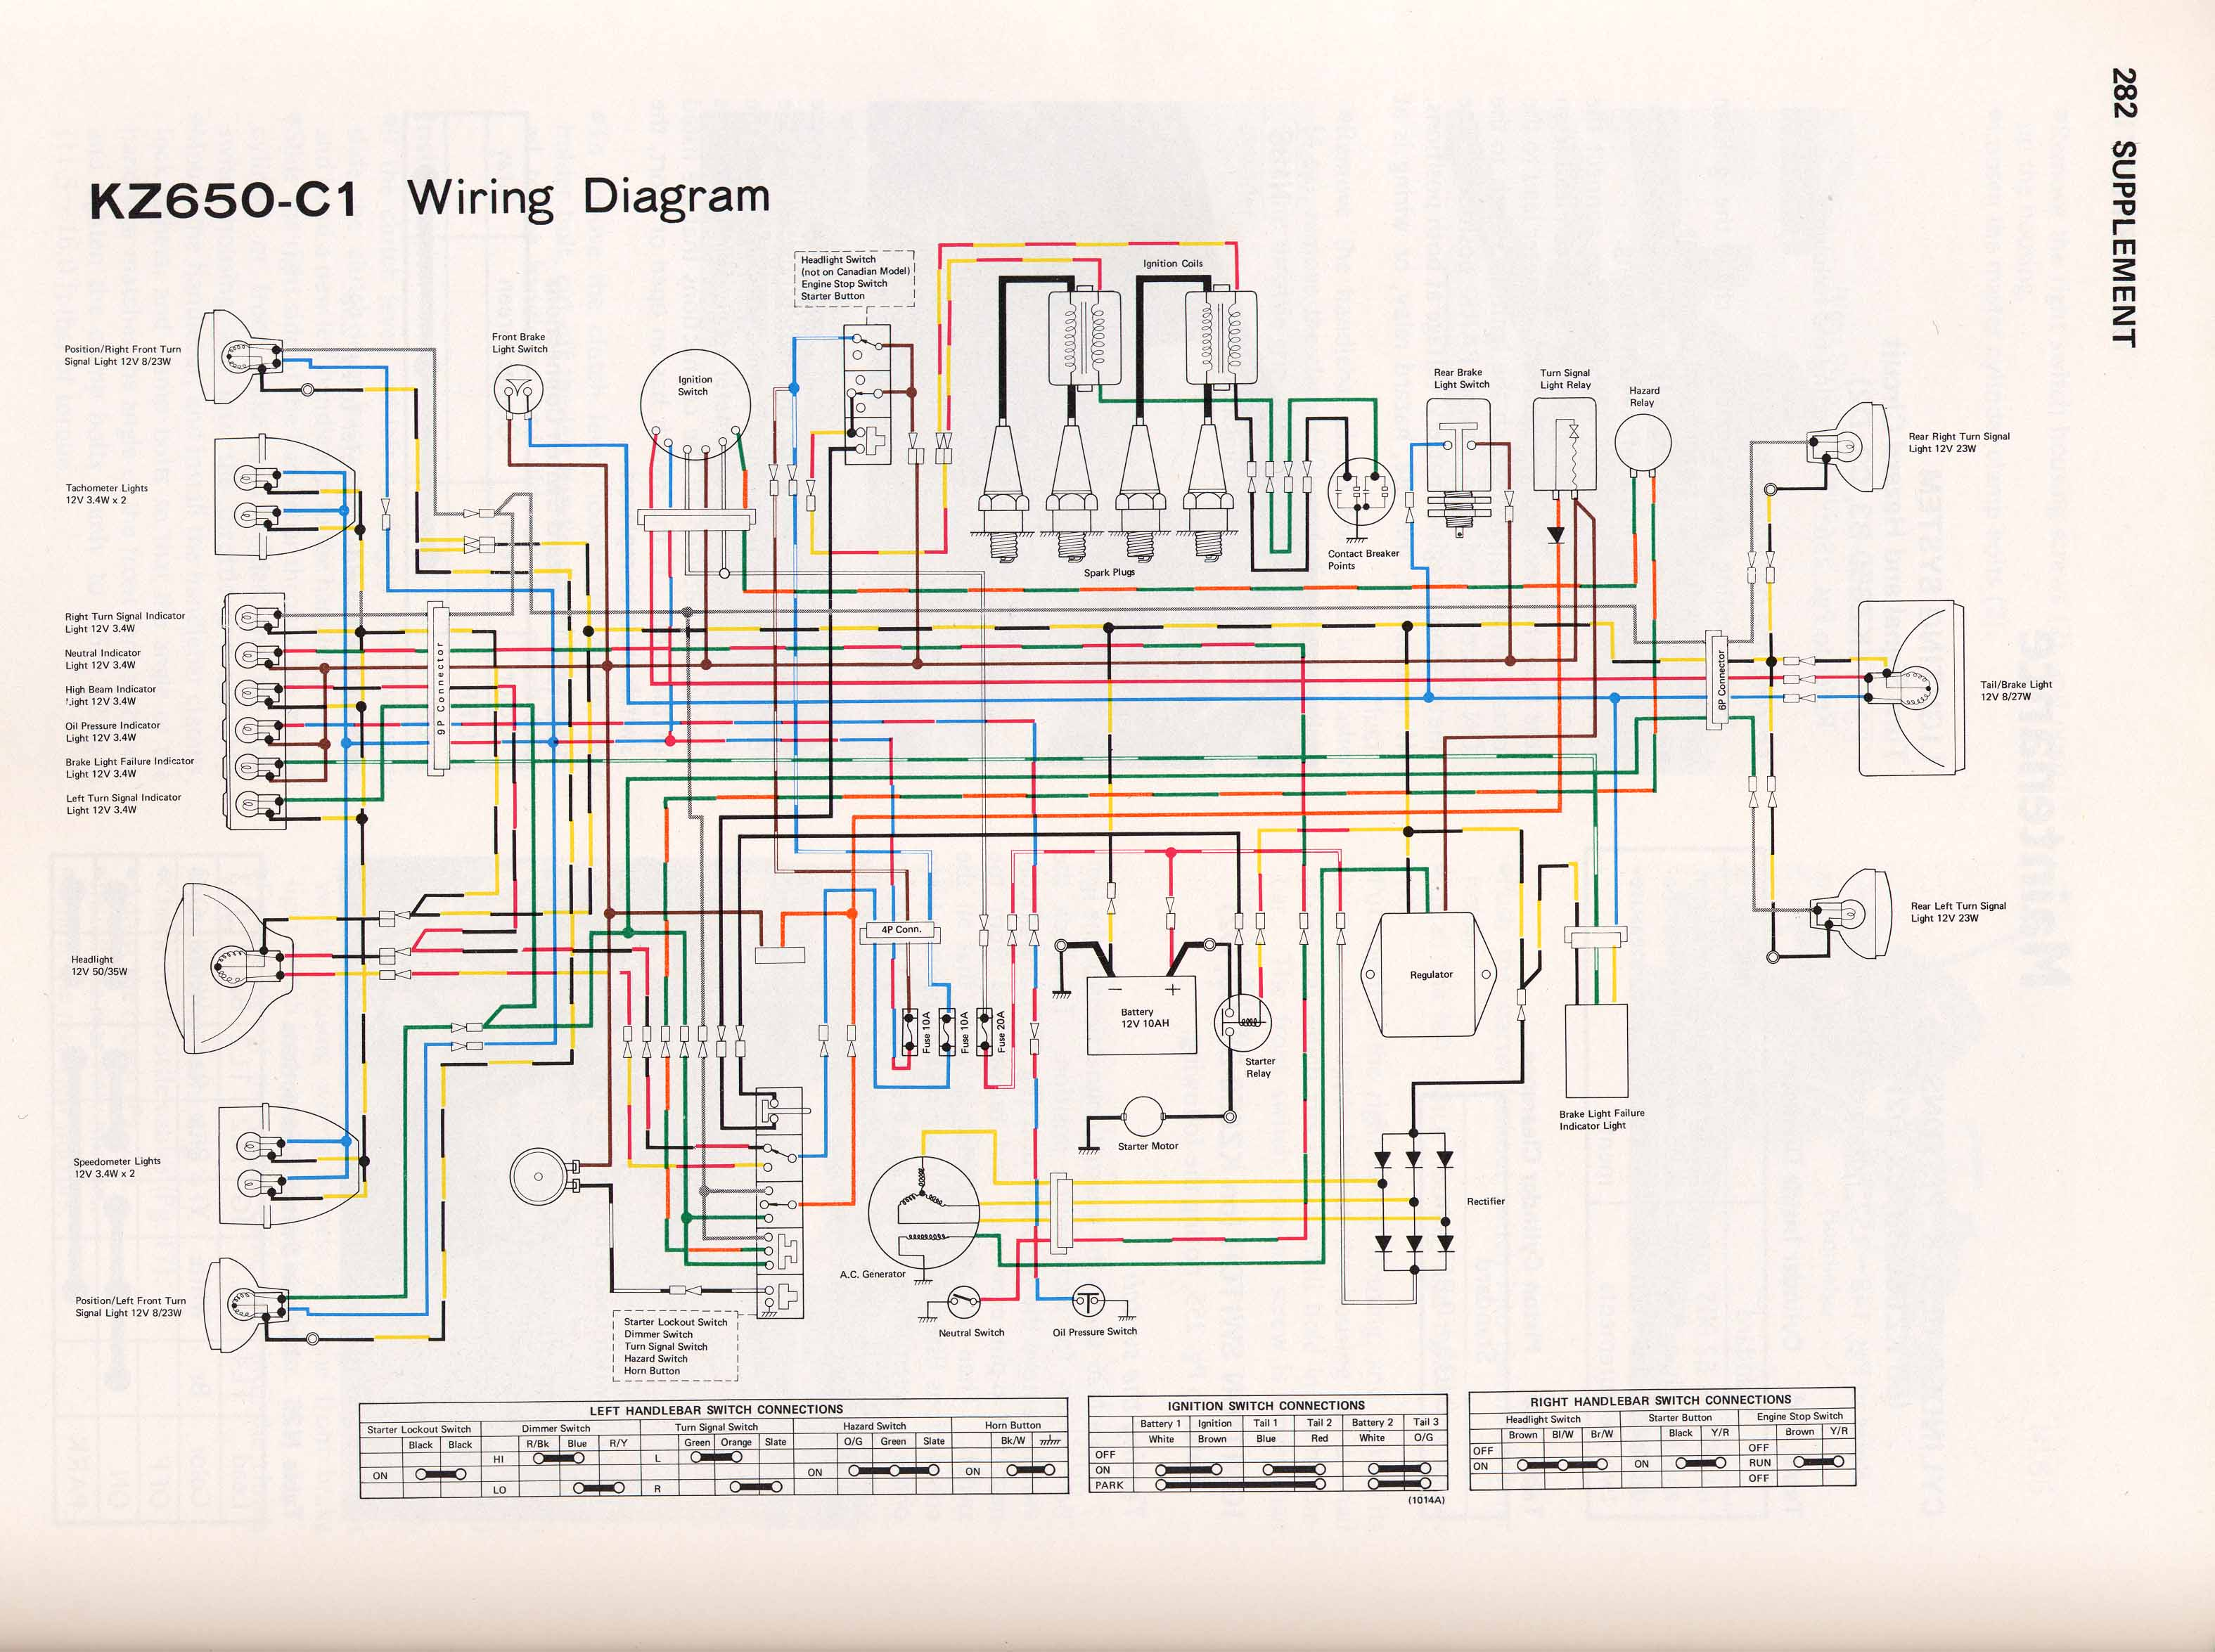 KZ650 C1 kawasaki z650 wiring diagram kawasaki wiring diagrams instruction z650 wiring diagram at reclaimingppi.co